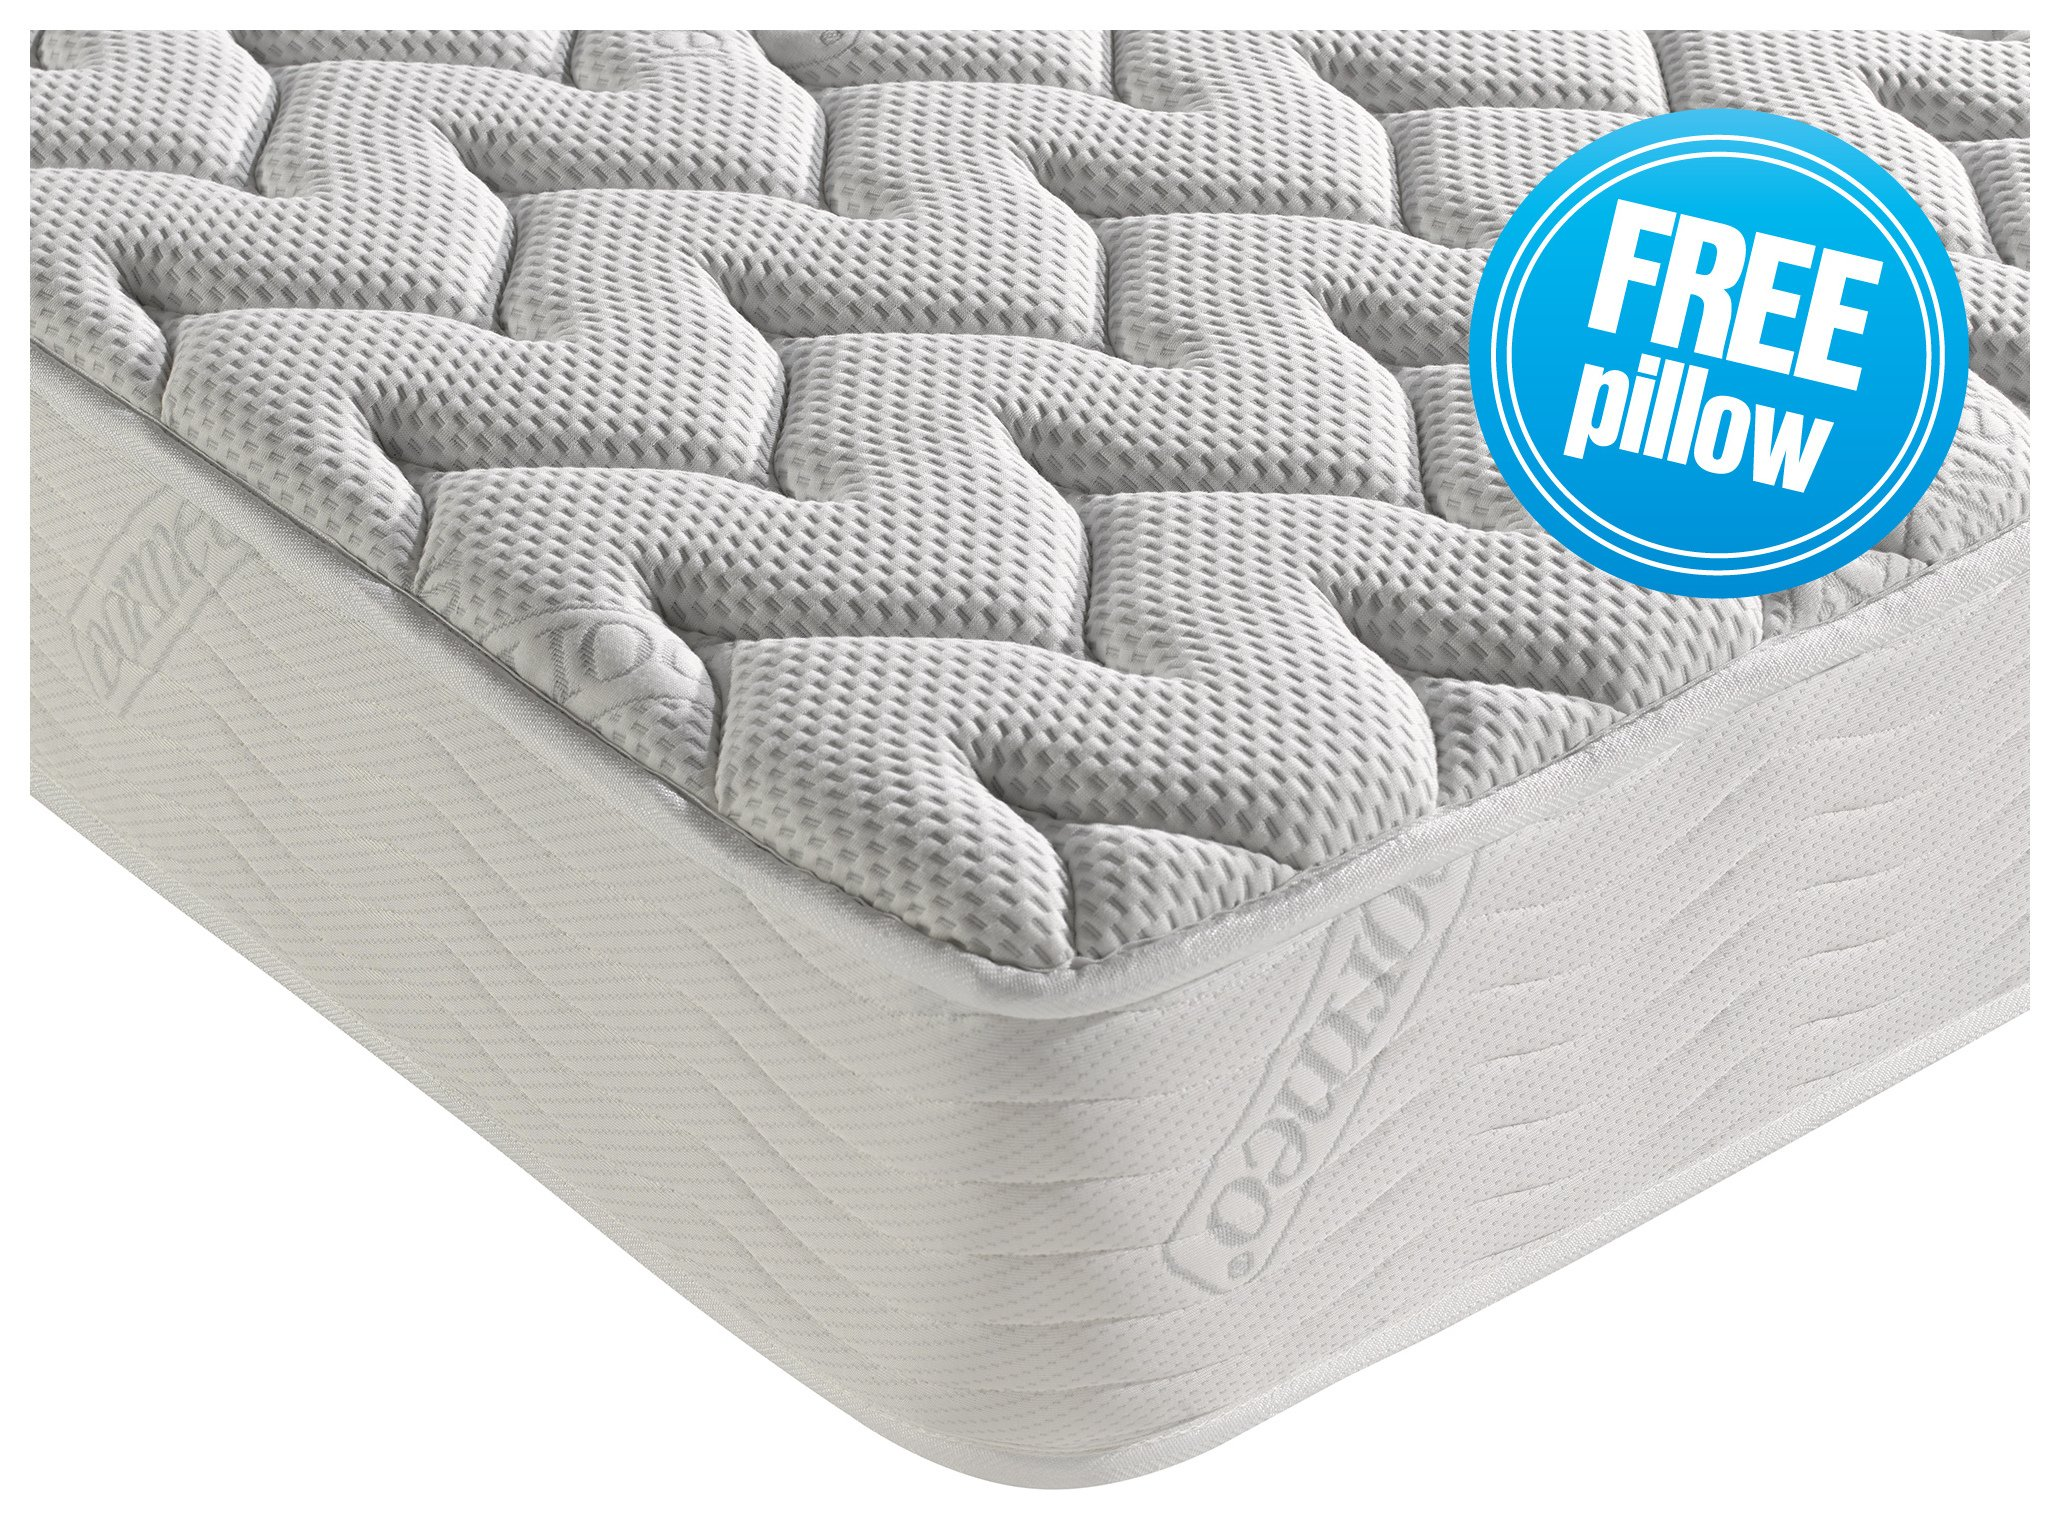 Image of Dormeo - Silver Plus - Kingsize Mattress